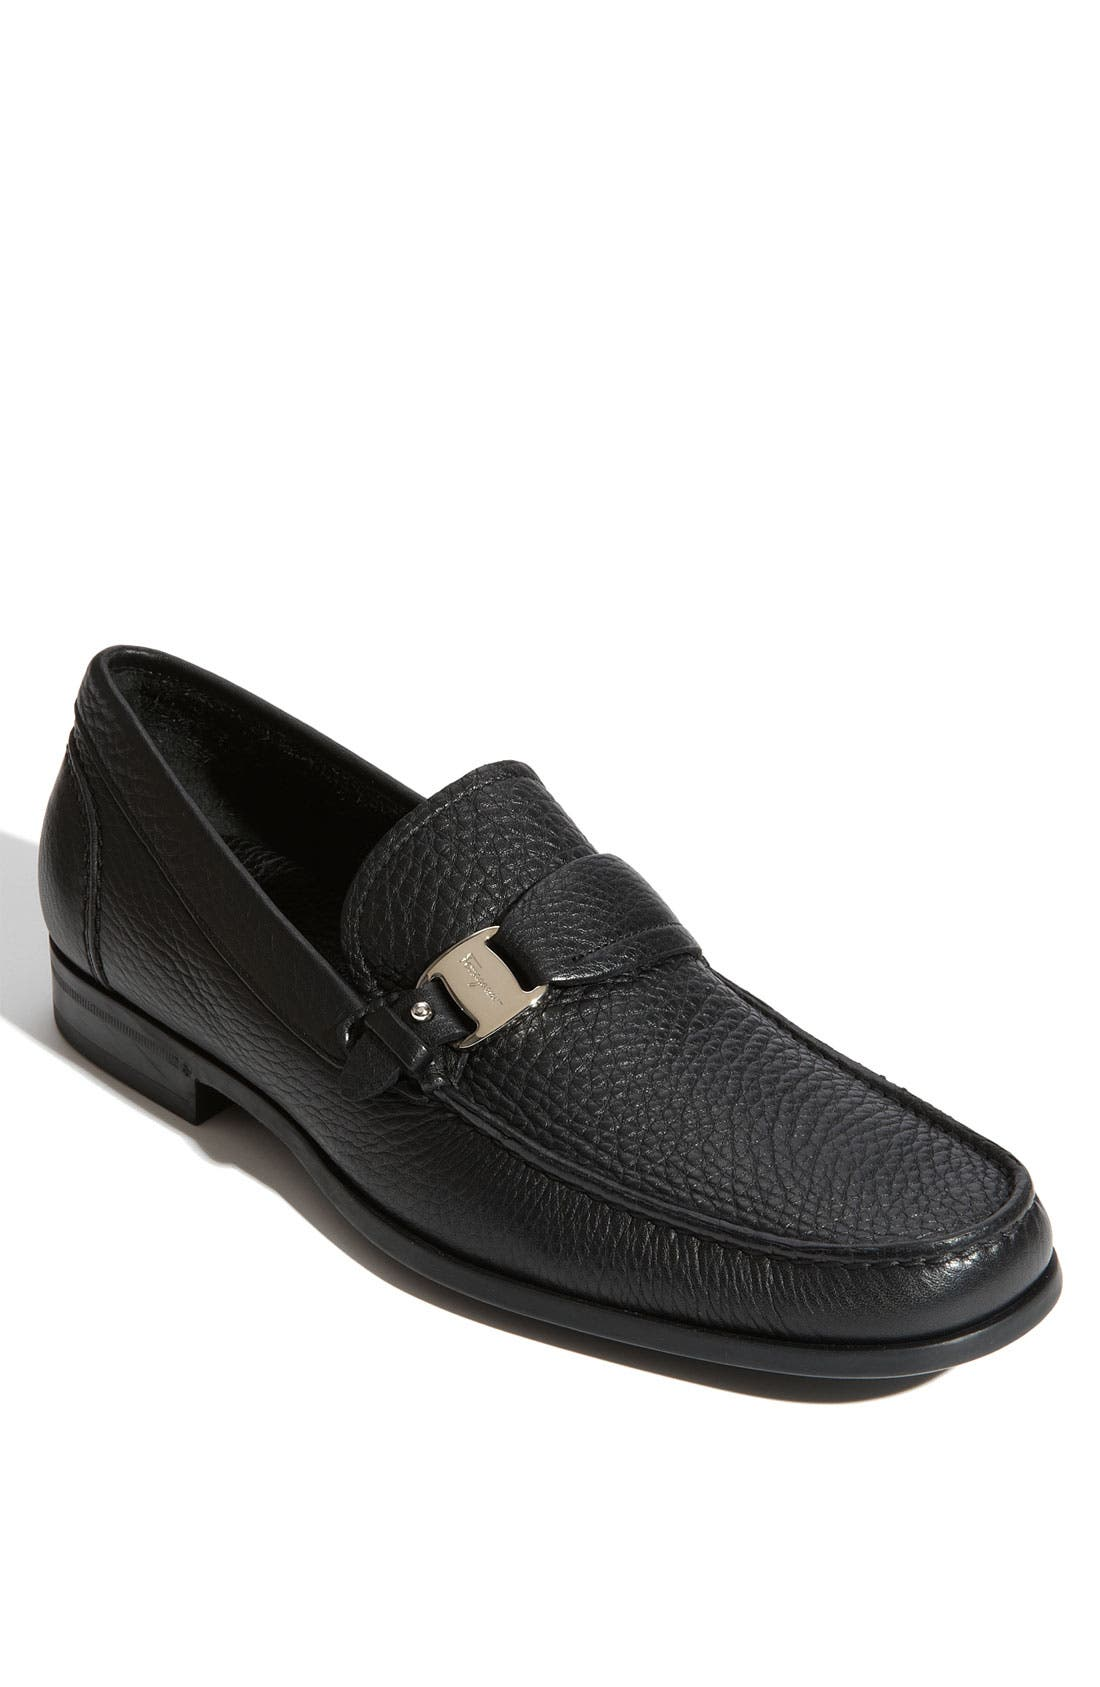 Alternate Image 1 Selected - Salvatore Ferragamo 'Bravo' Loafer (Men)